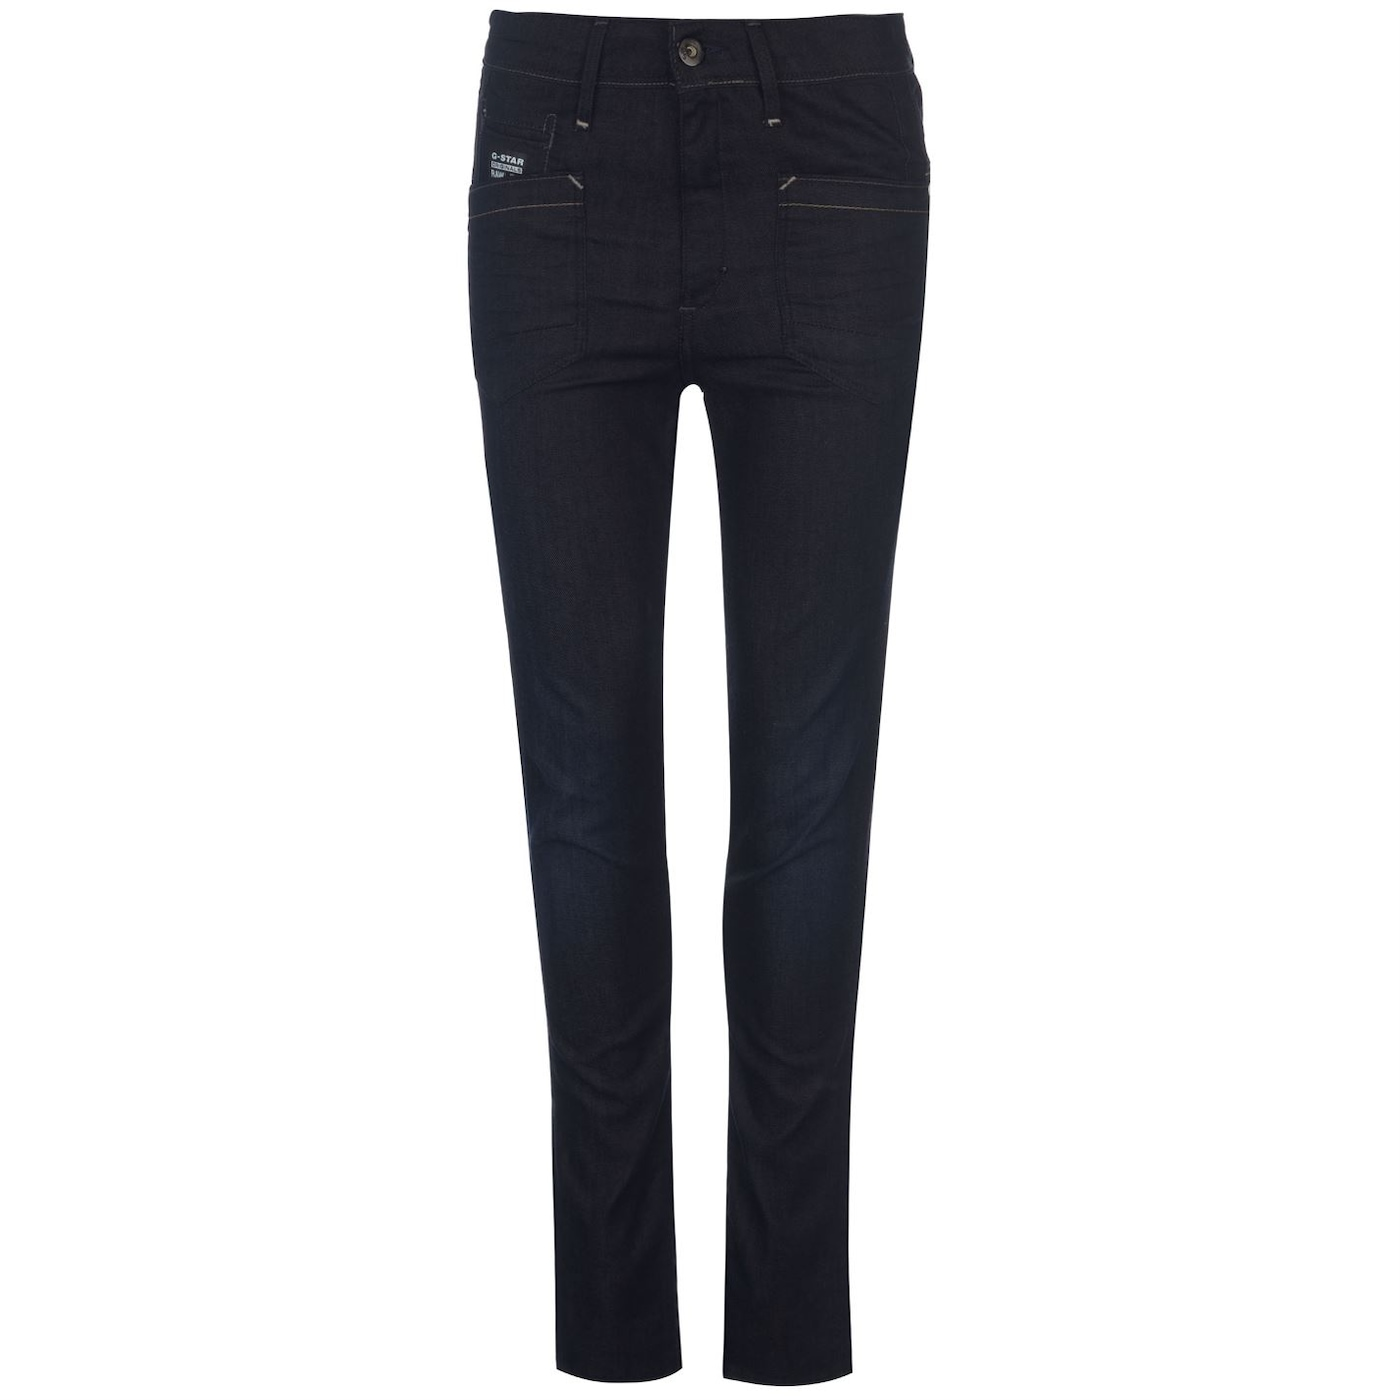 G Star 60342 Low Tapered Jeans